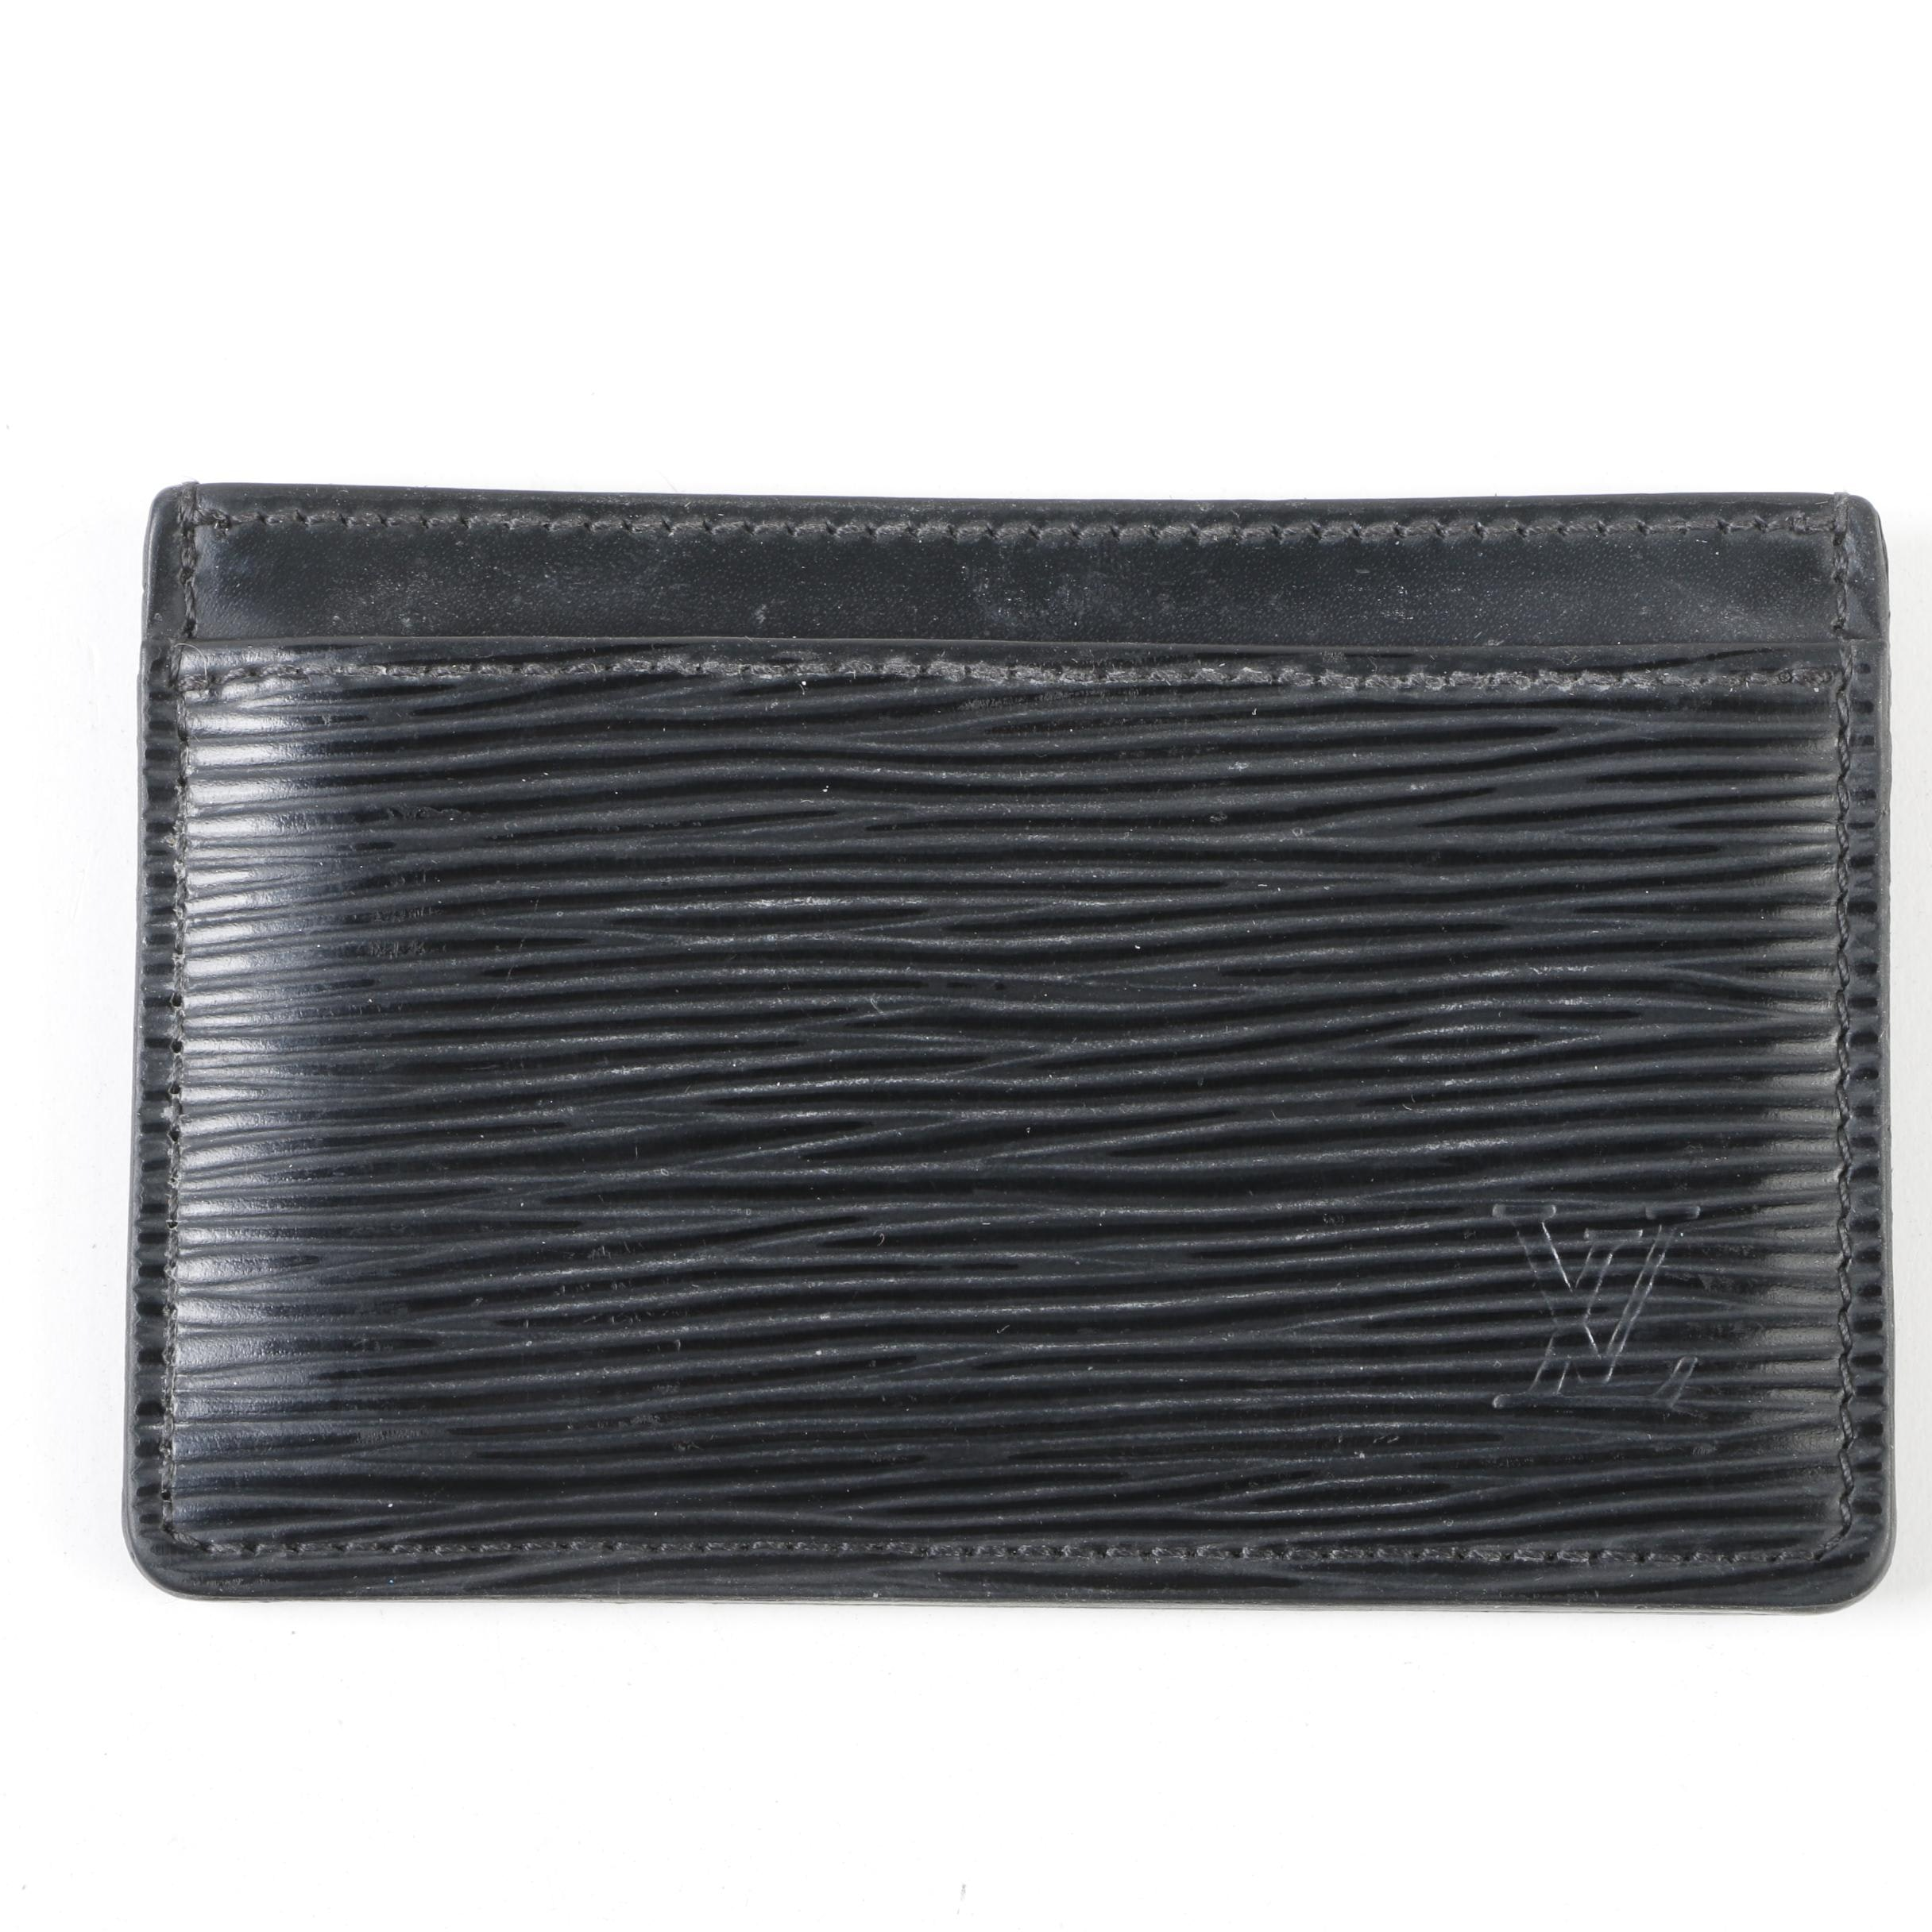 Louis Vuitton Paris Black Epi Leather Card Case